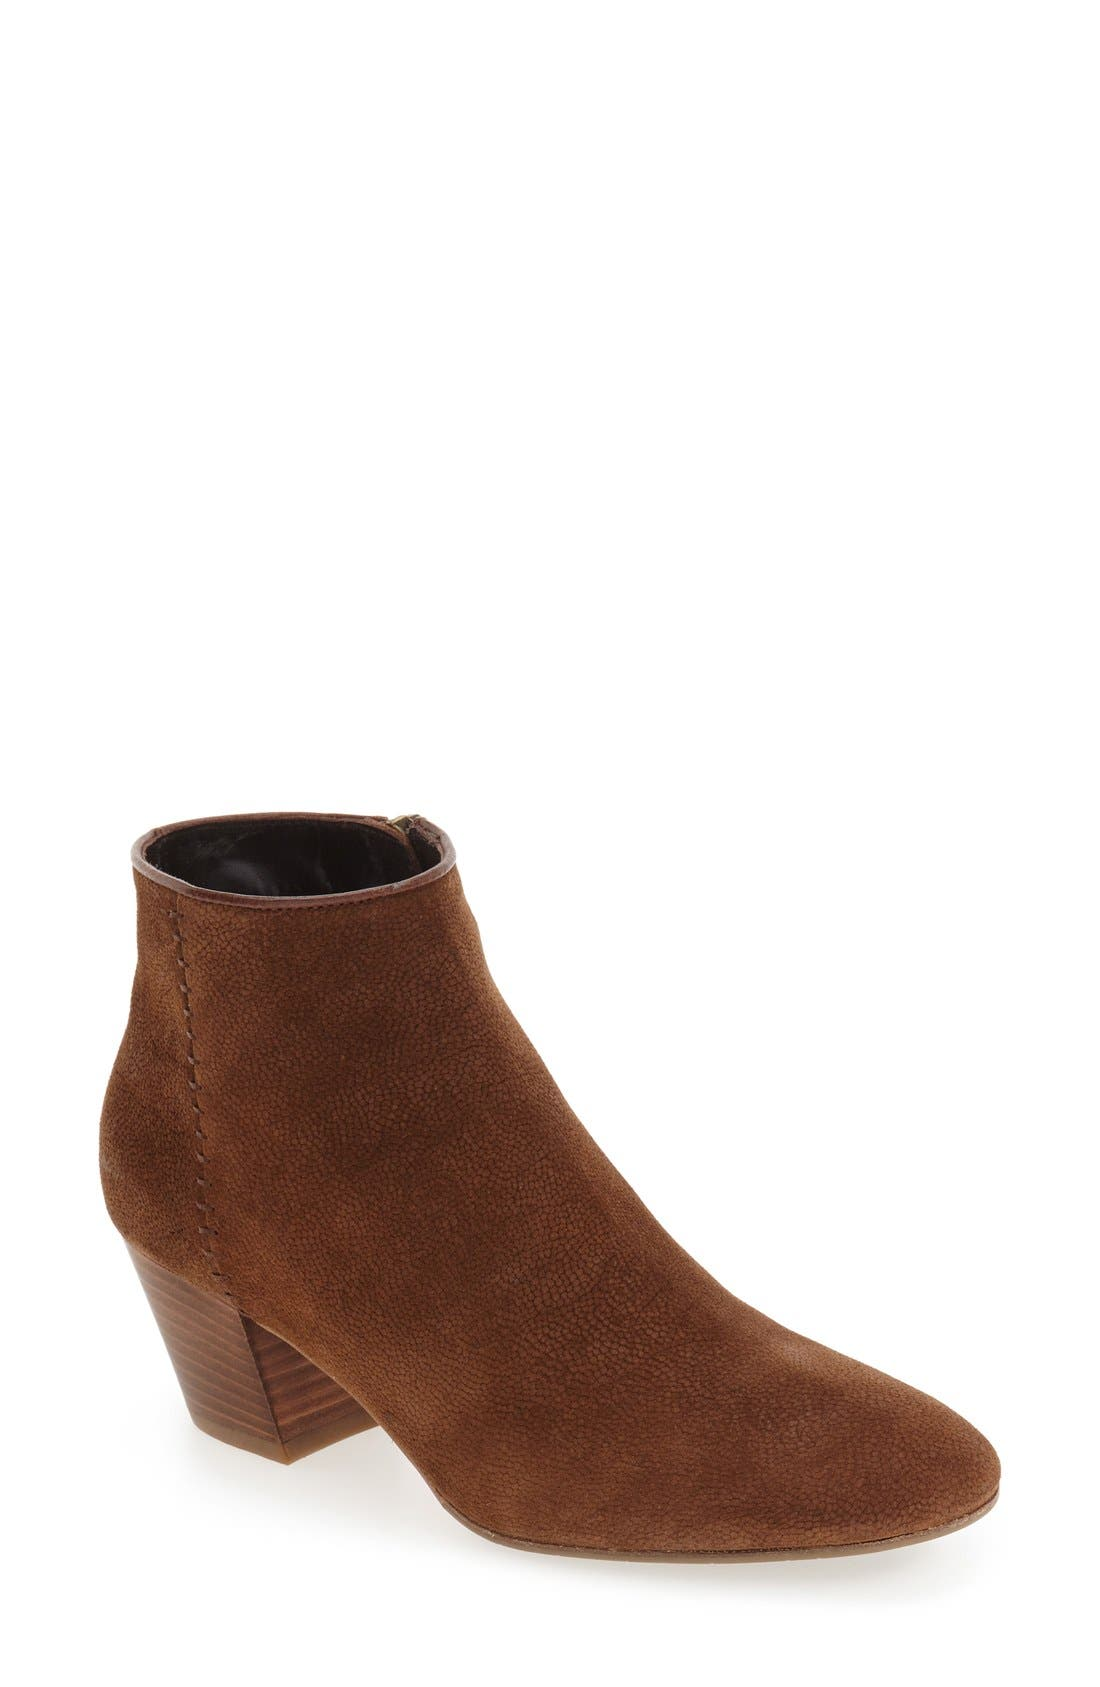 Alternate Image 1 Selected - Aquatalia 'Felicia' Weatherproof Bootie (Women)